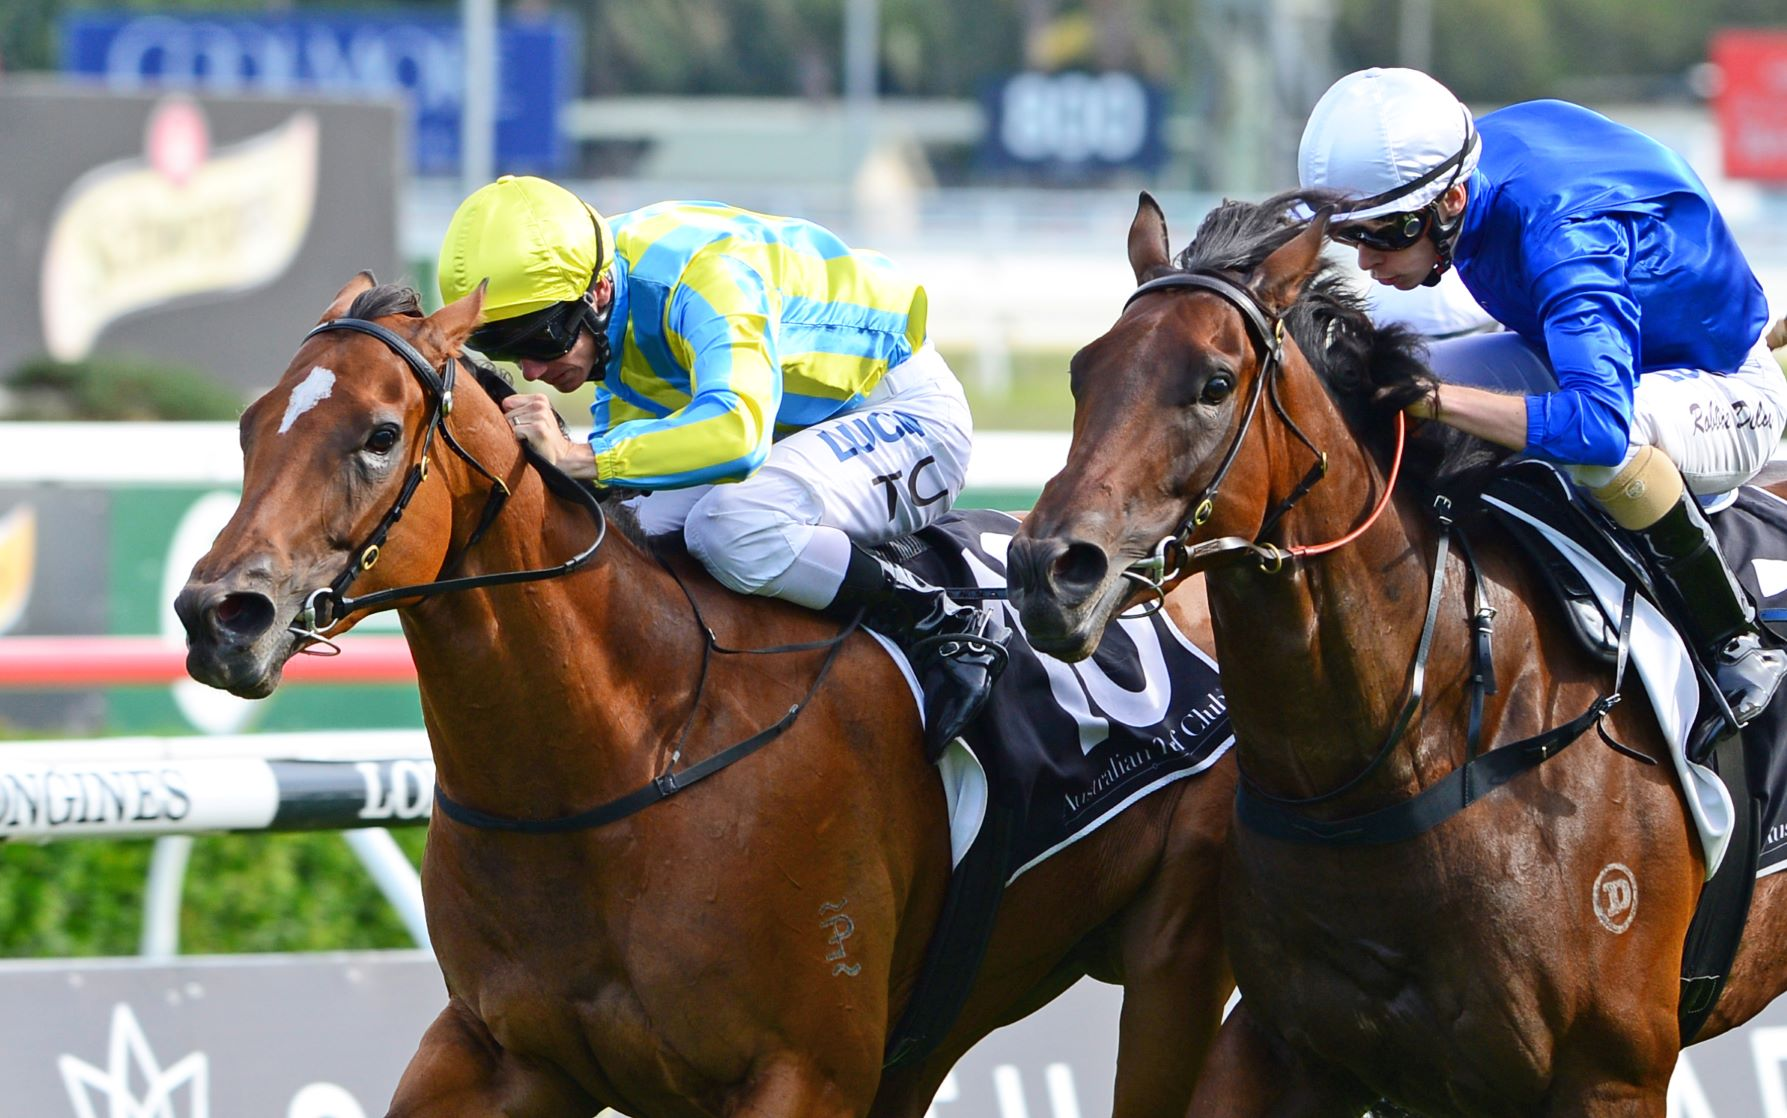 Alassio fights off Manicure to win the Triscay Stakes